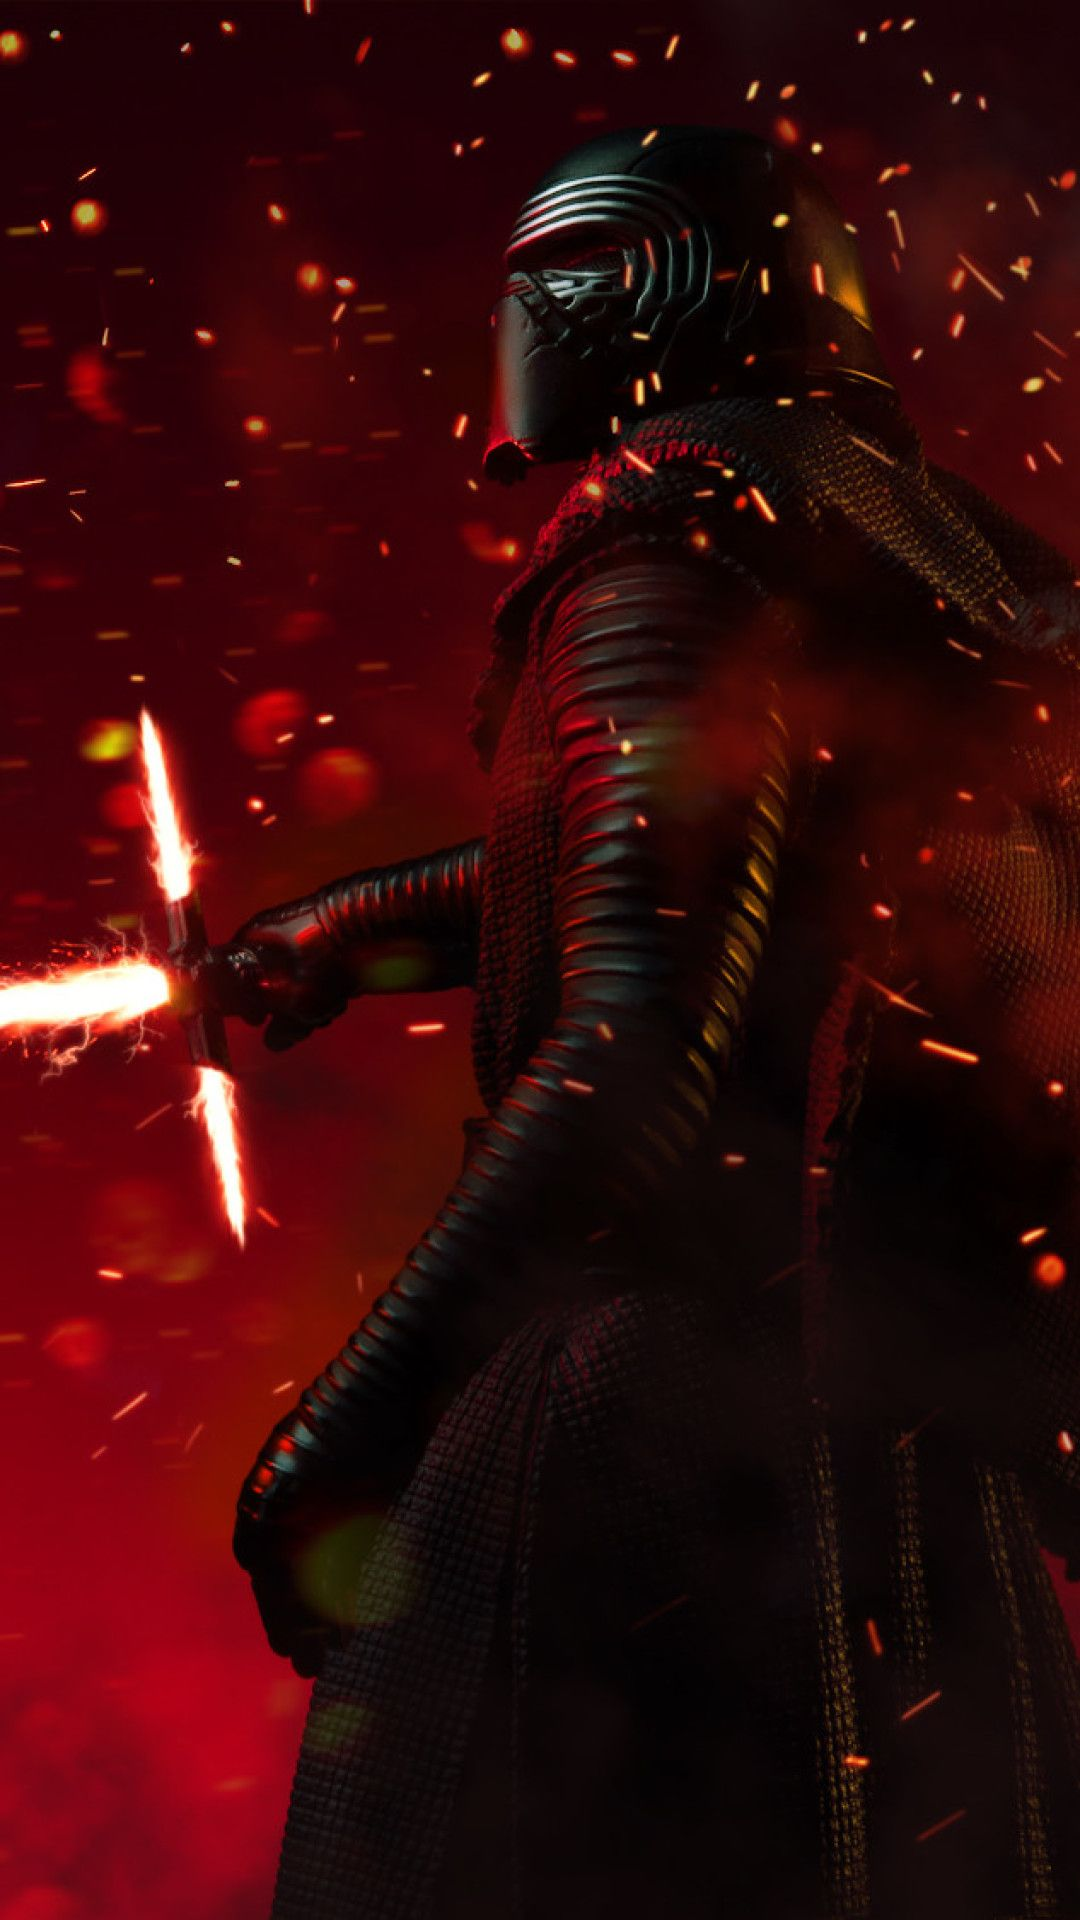 CGI Kylo Ren New Mobile Wallpaper (iPhone, Android